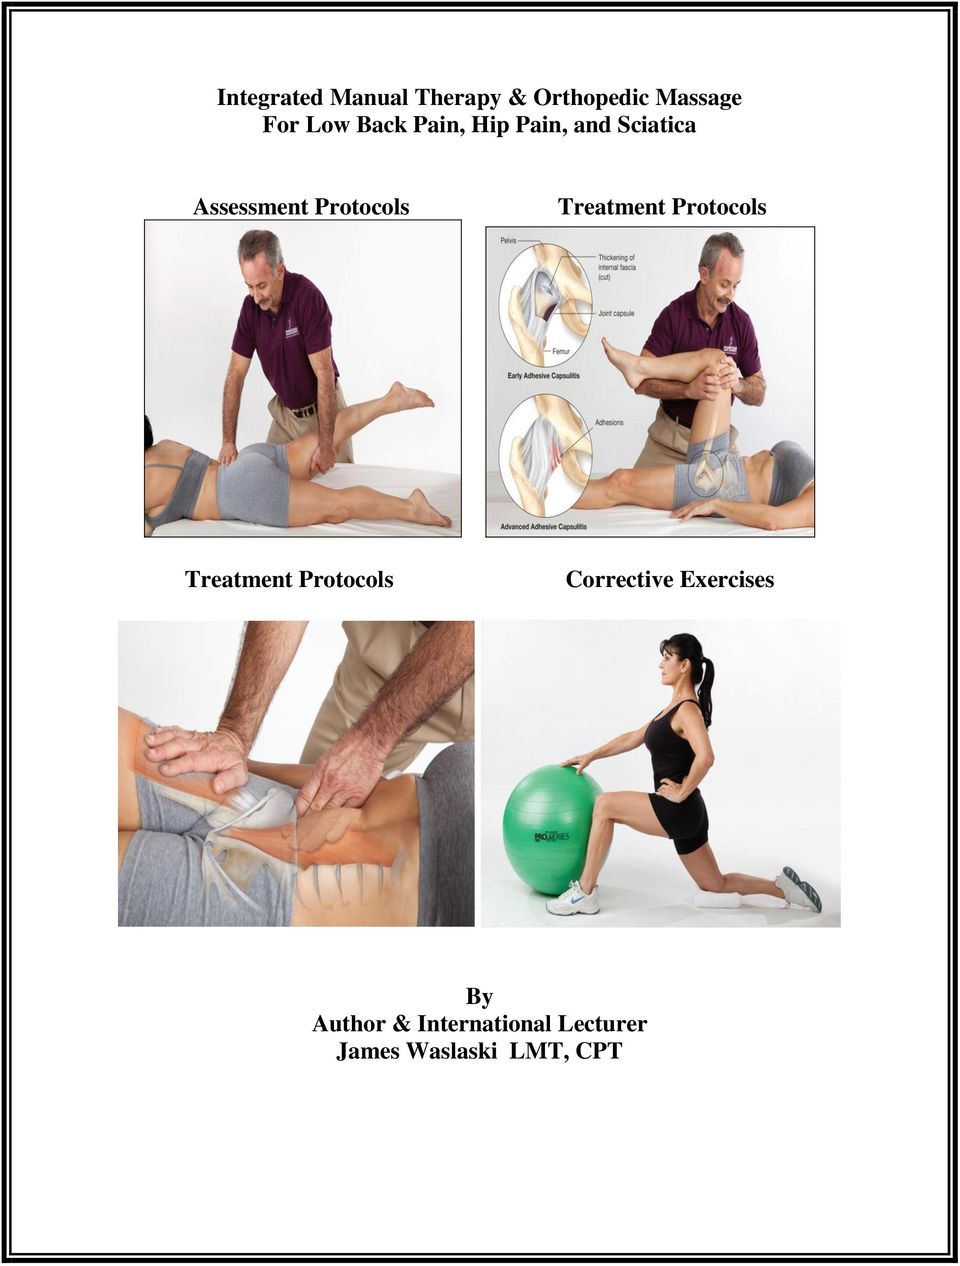 Protocols Treatment Protocols Treatment Protocols